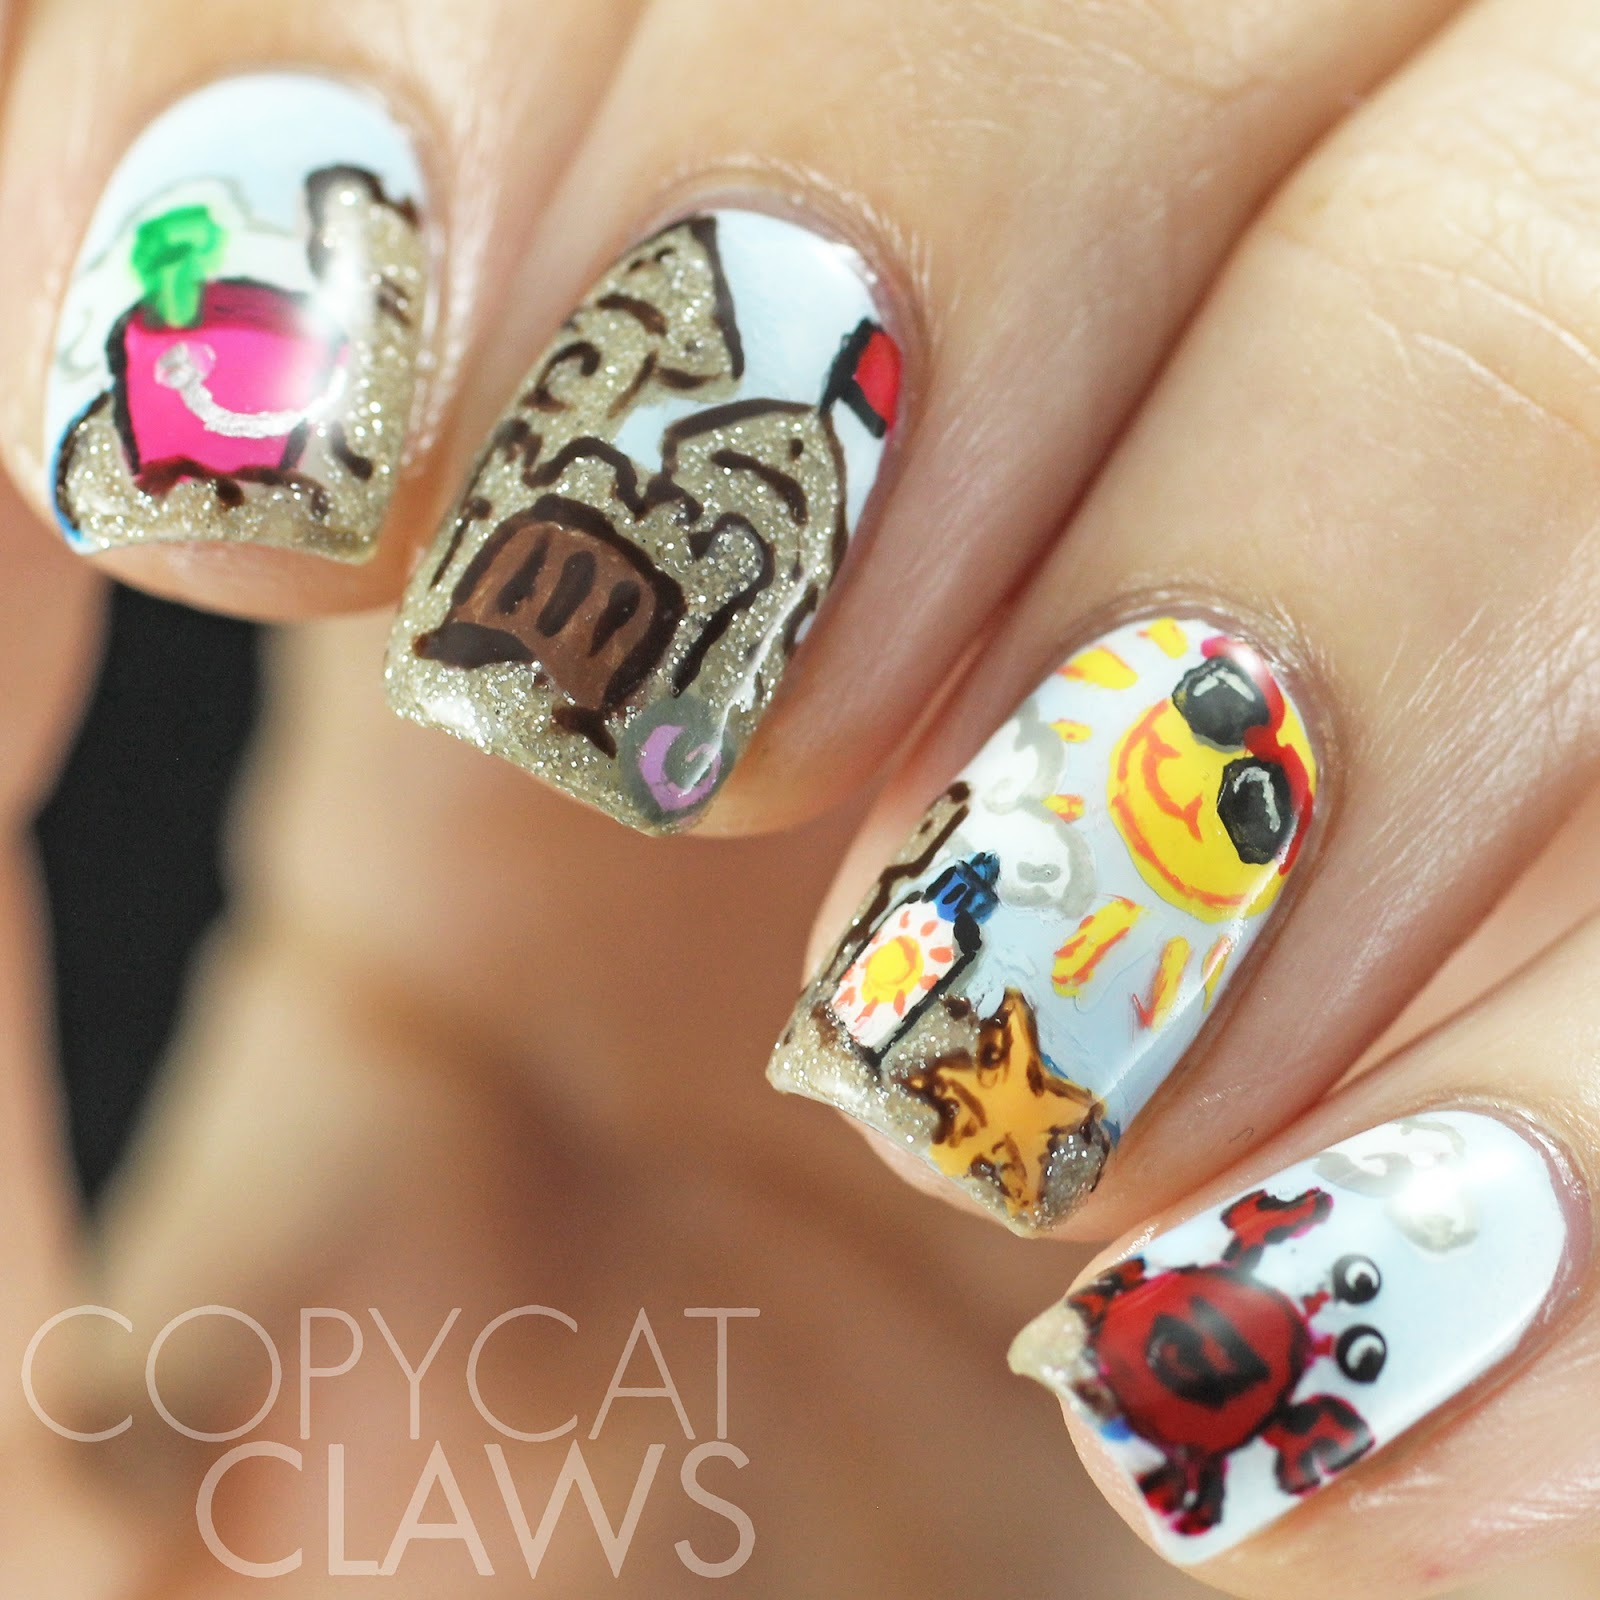 Copycat Claws: Summer Nail Art Twinsies with Lady Maid Nails